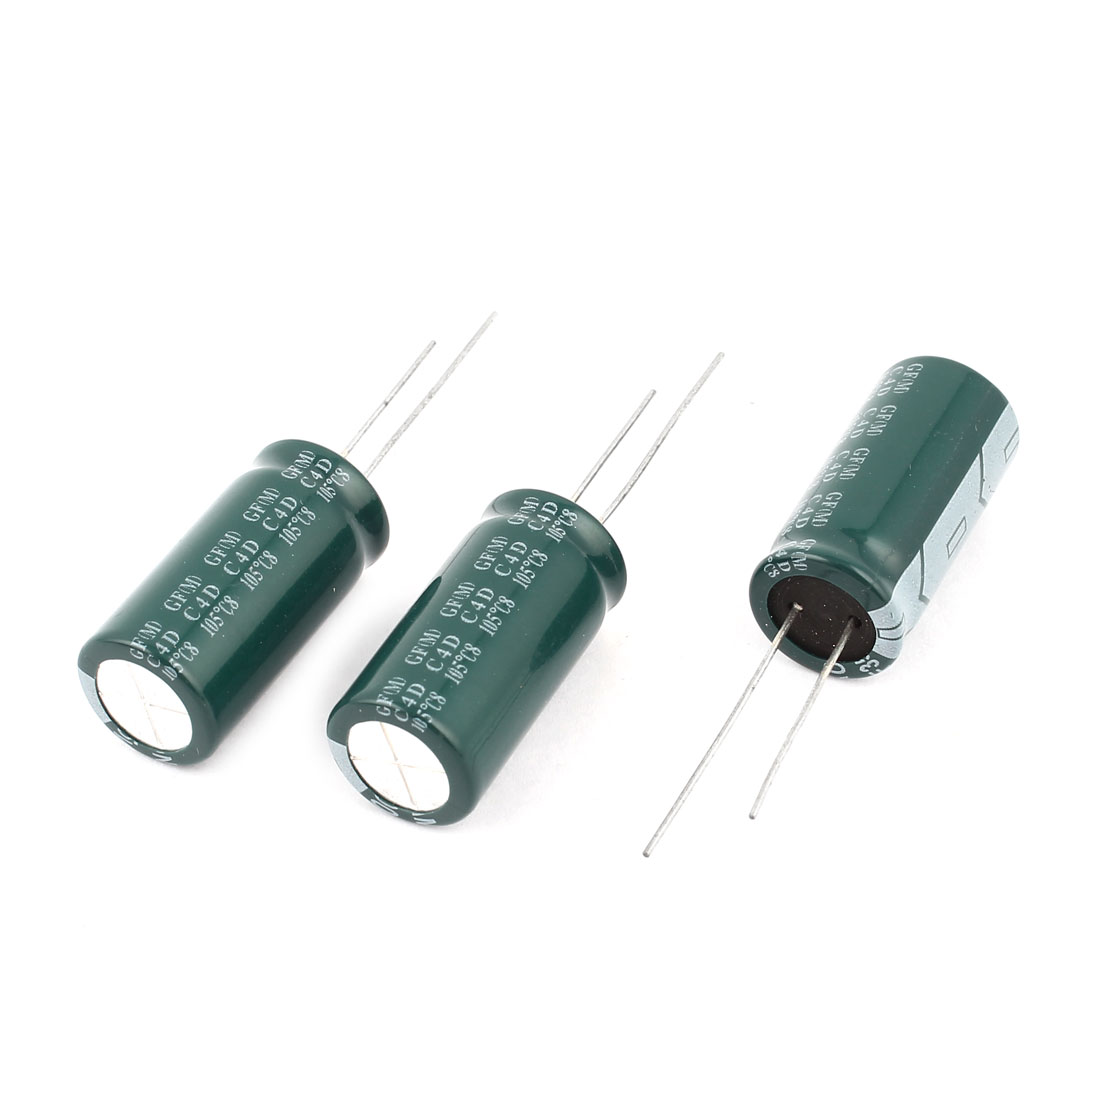 3PCS 1500uF 35V 13x26mm Through Hole Radial Lead Aluminium Electrolytic Capacitor